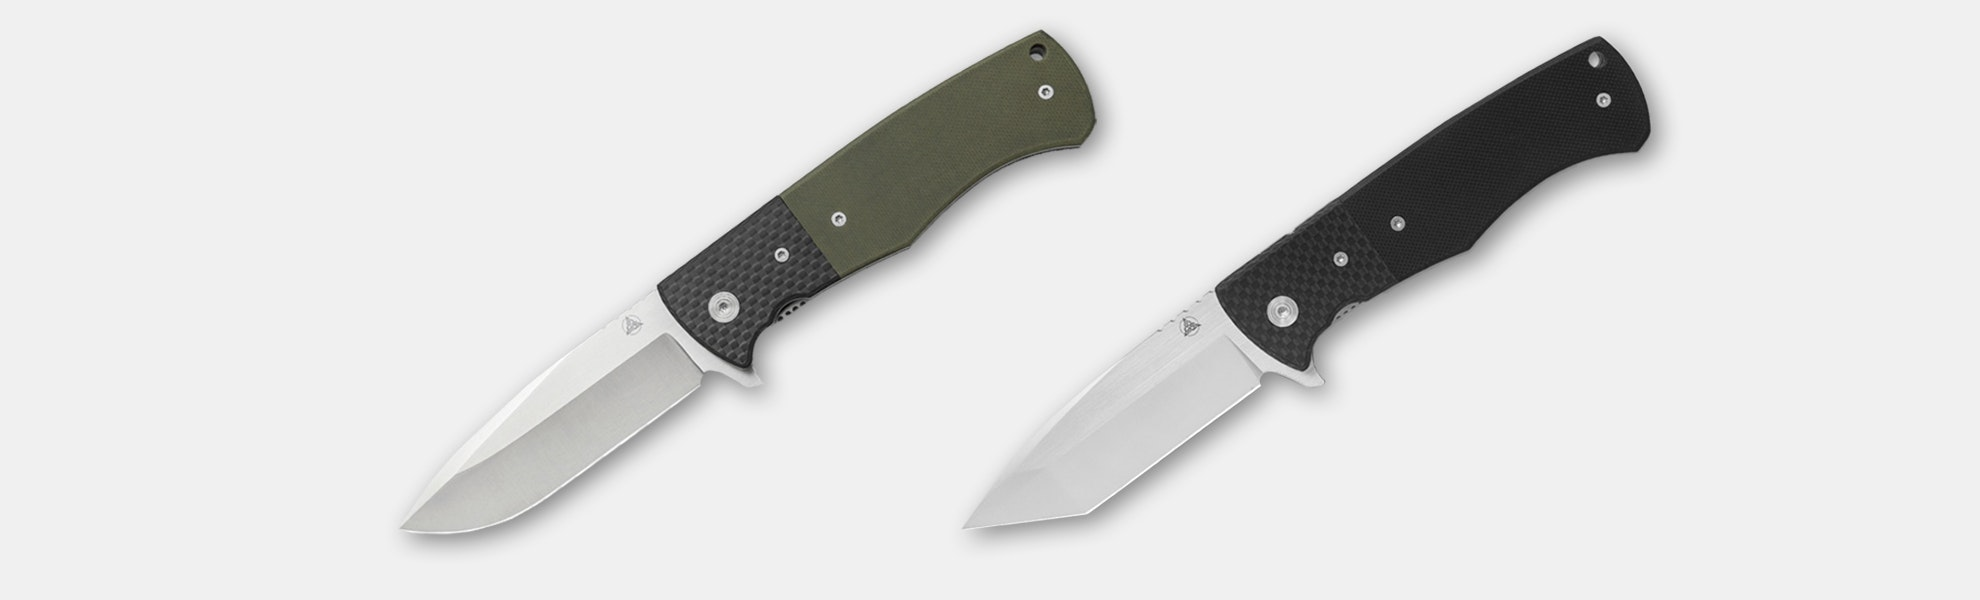 Nemesis Mar Private Reserve VG-10 Knives